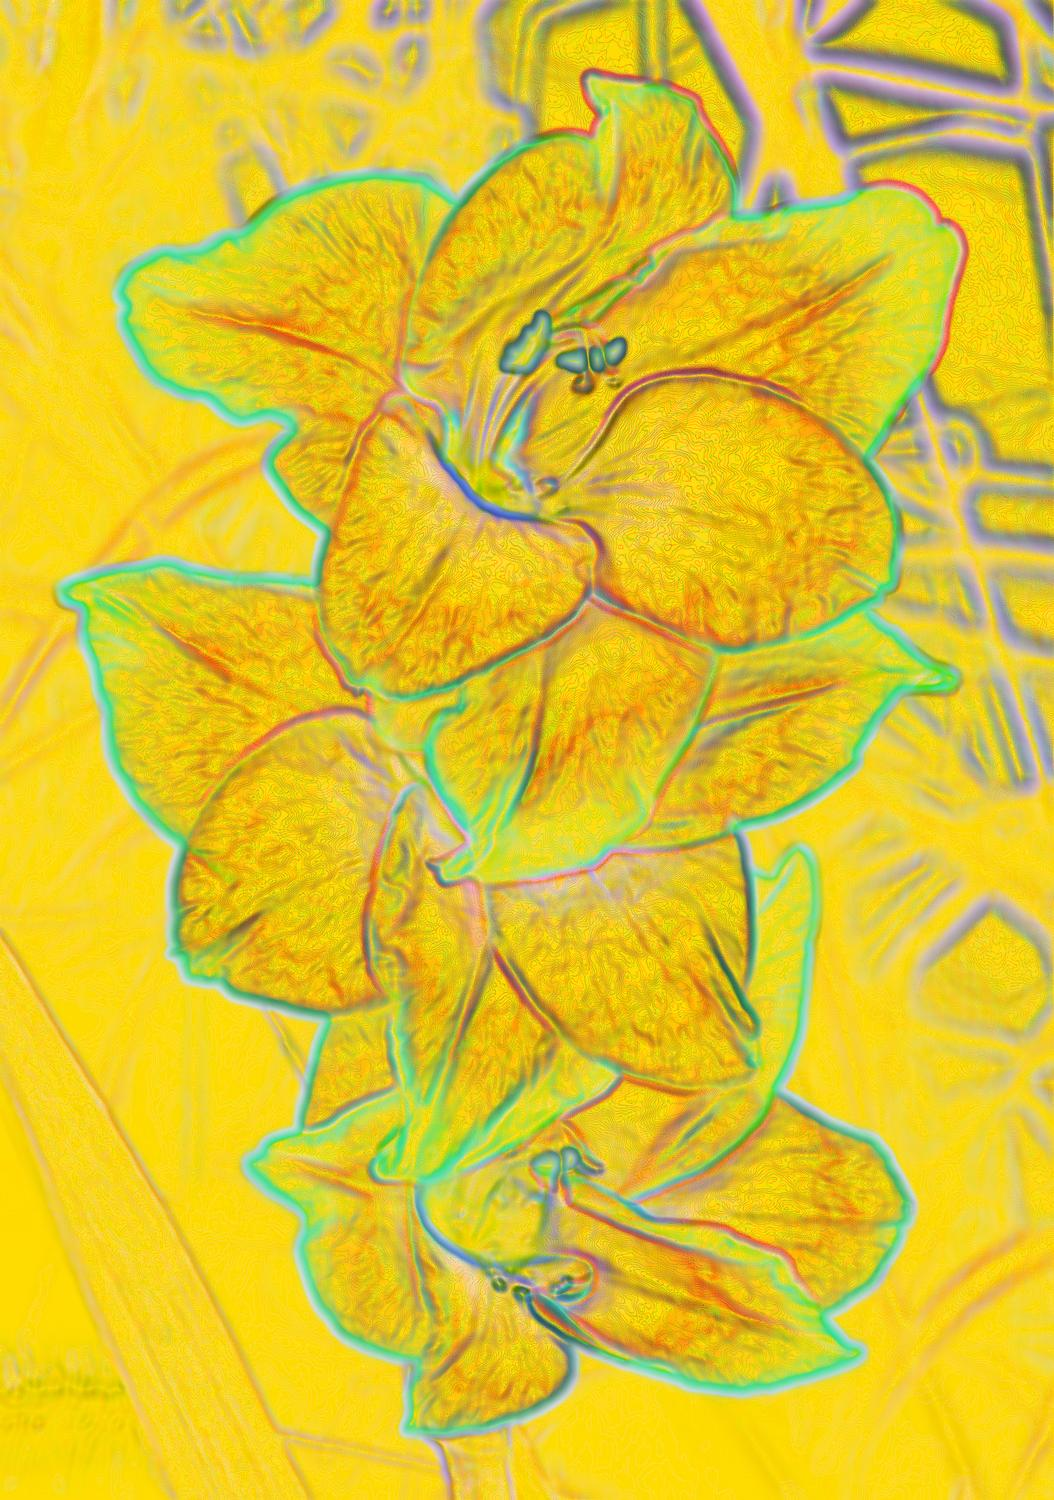 yellow iris outlined in light blue on light yellow background striking visual - Orange flowers on a yellow background - Techno-Impressionist Museum - Techno-Impressionism - art - beautiful - photo photography picture - by Tony Karp